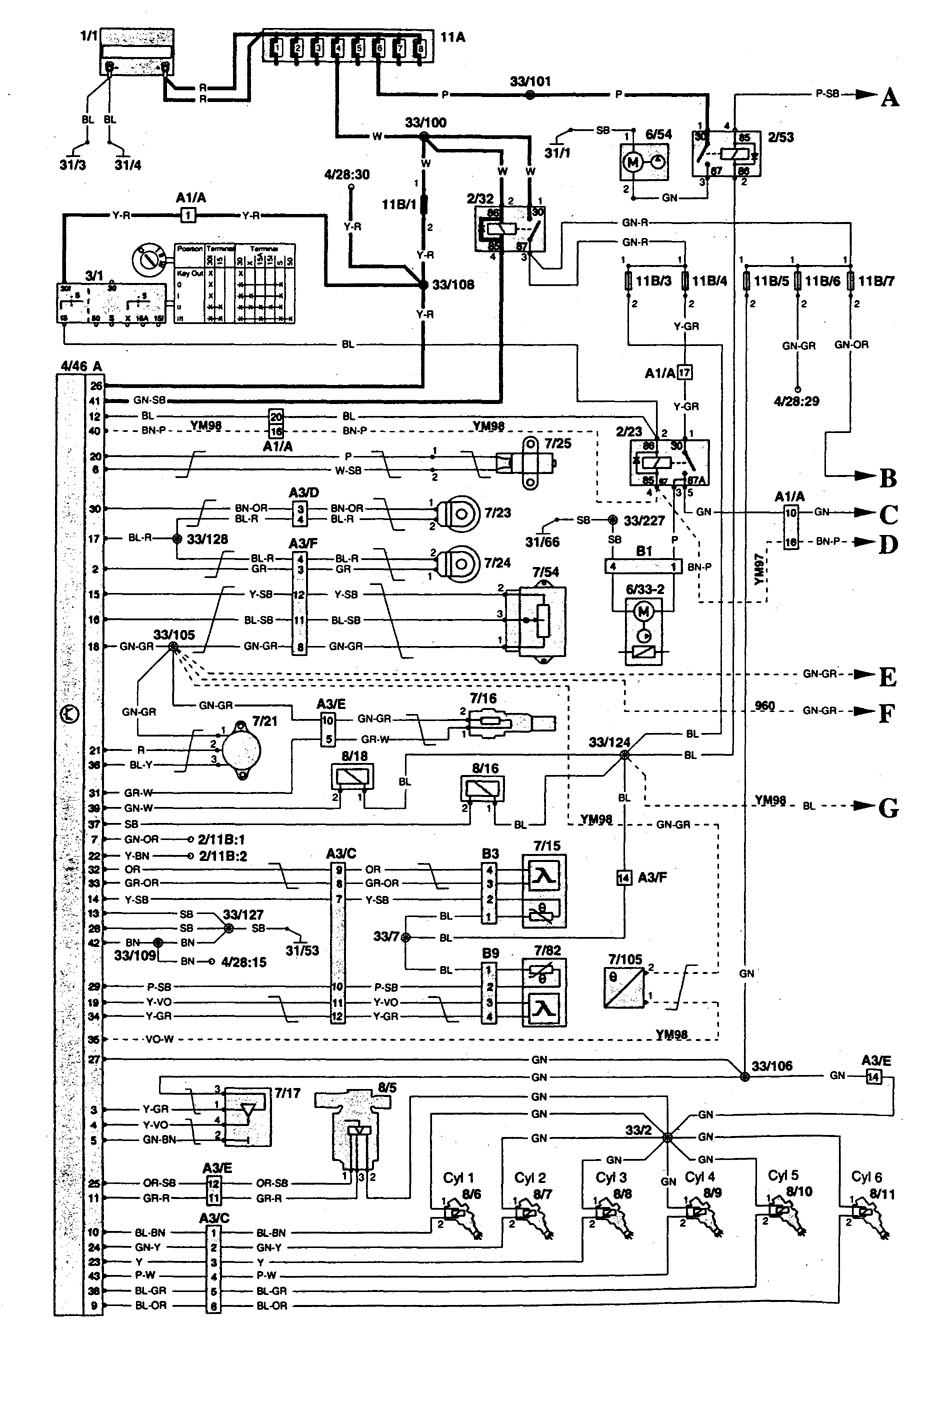 medium resolution of 1995 volvo 960 engine diagram wiring diagram volvo fuel pump wiring diagram 1995 volvo 940 wiring diagram